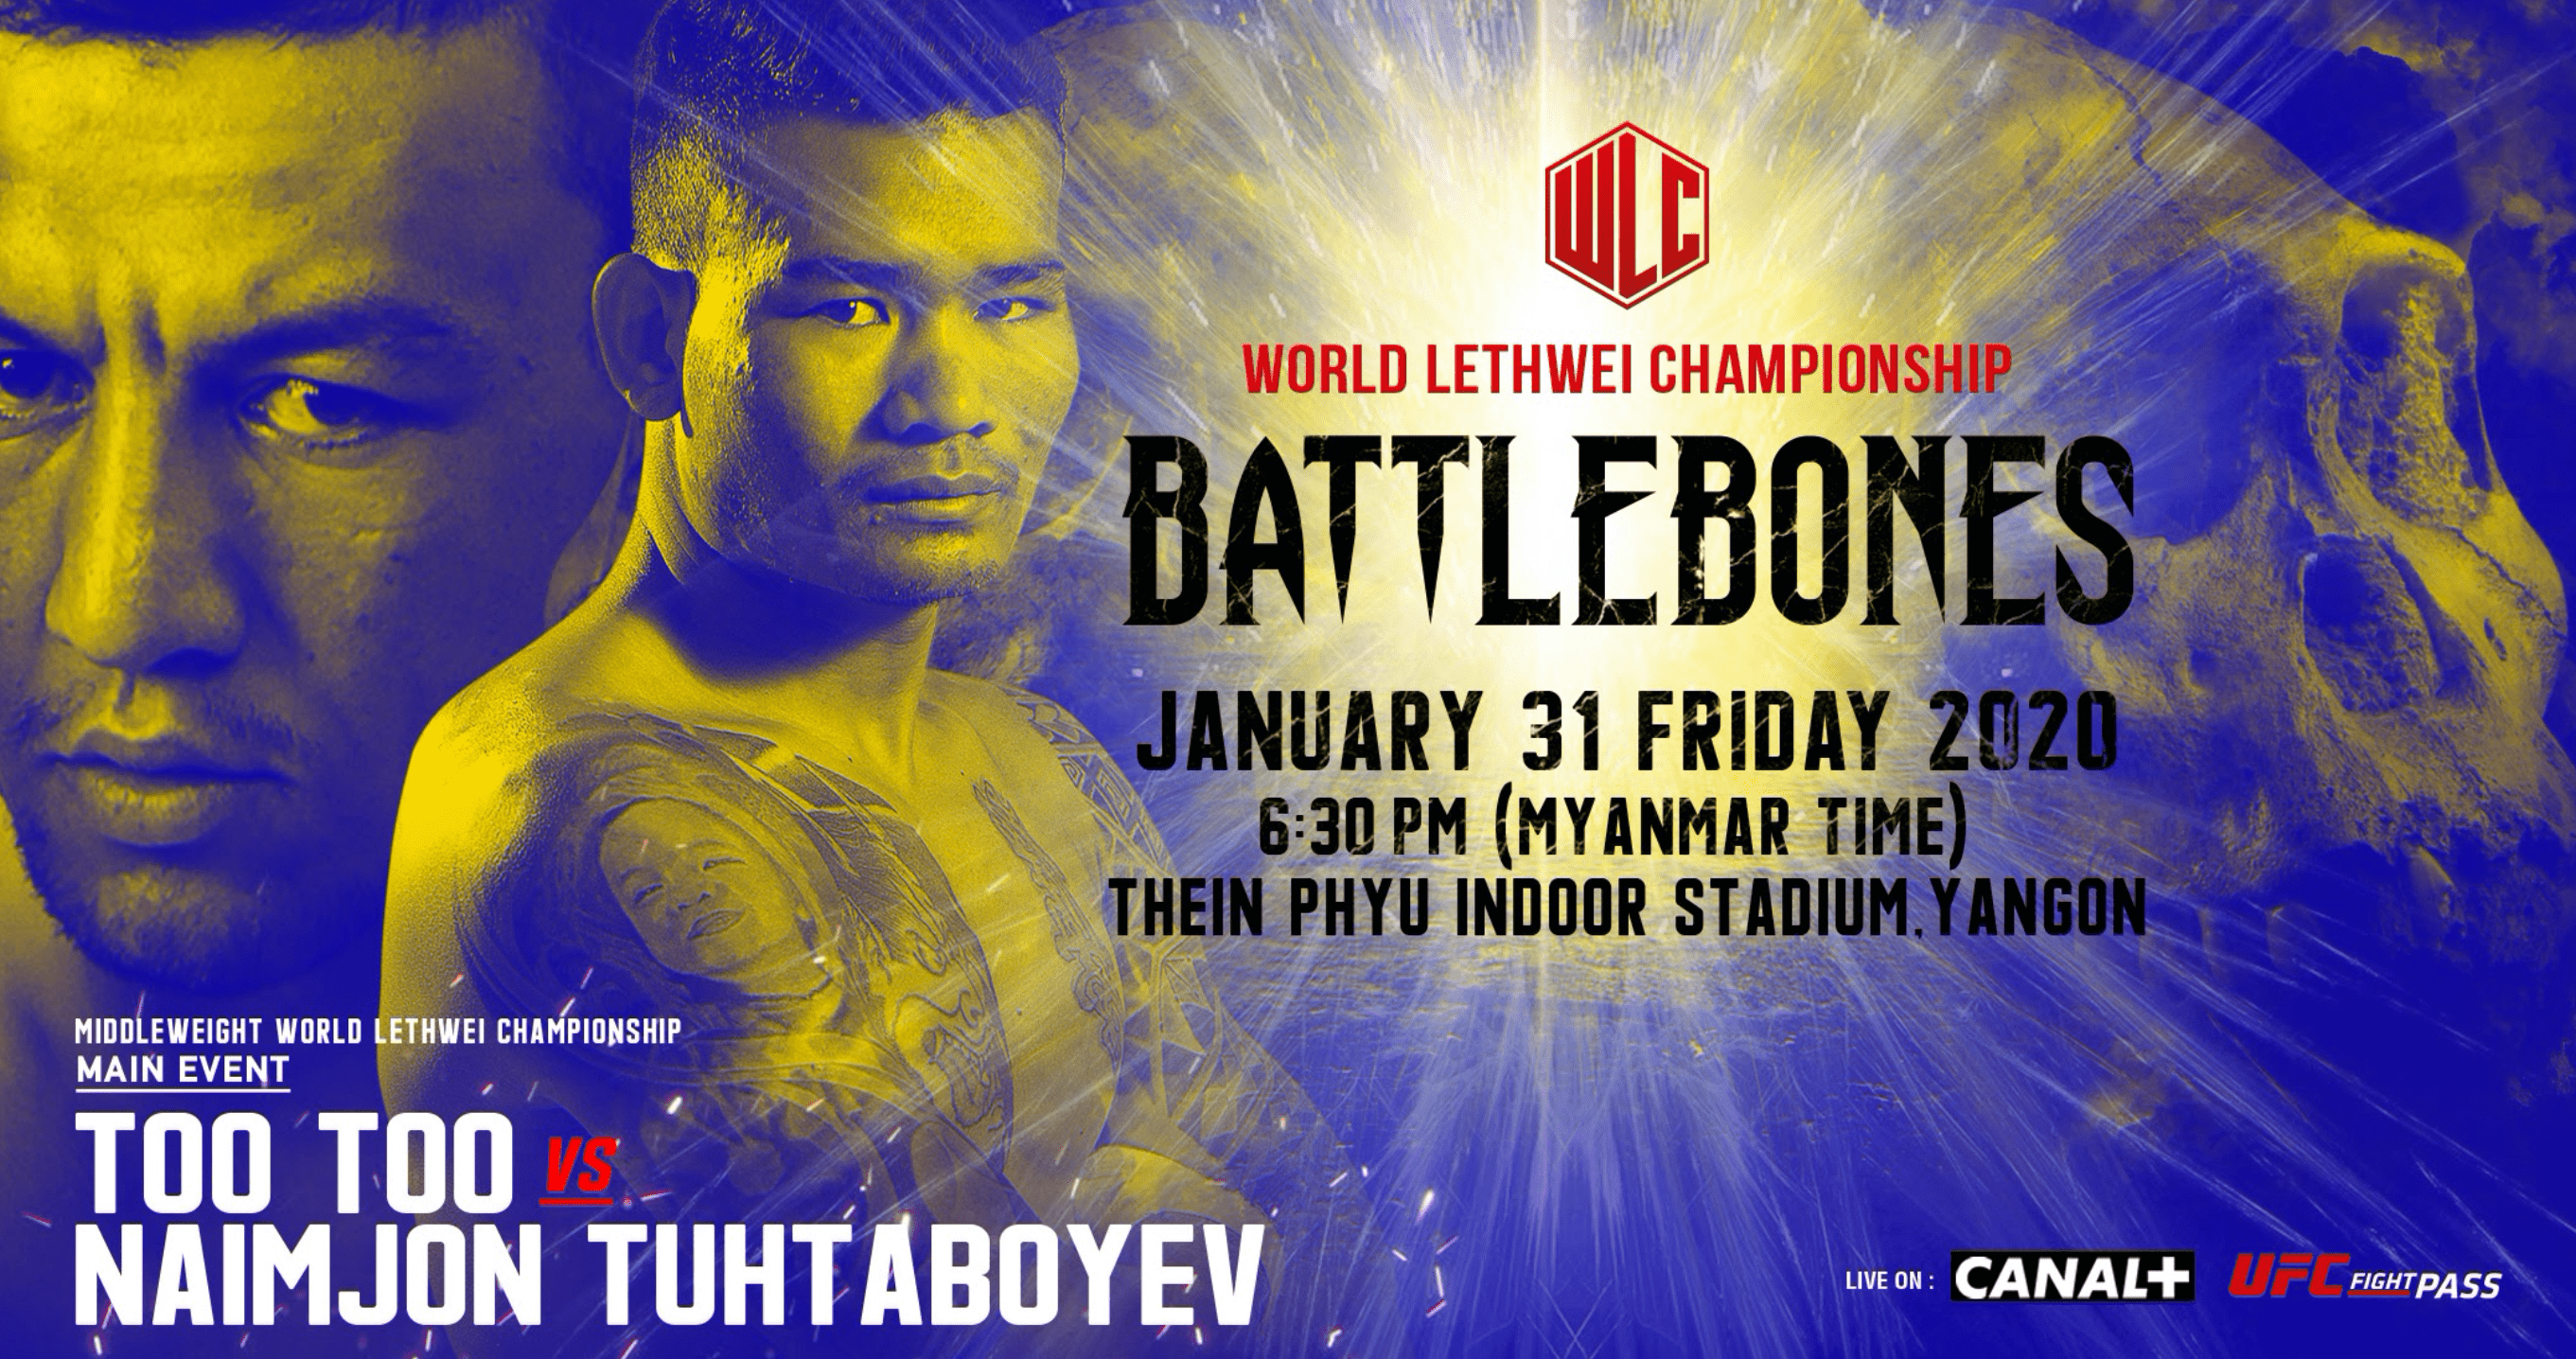 WLC: Battlebones – Naimjon Tuhtaboyev On Too Too: I Will Knock Him Out